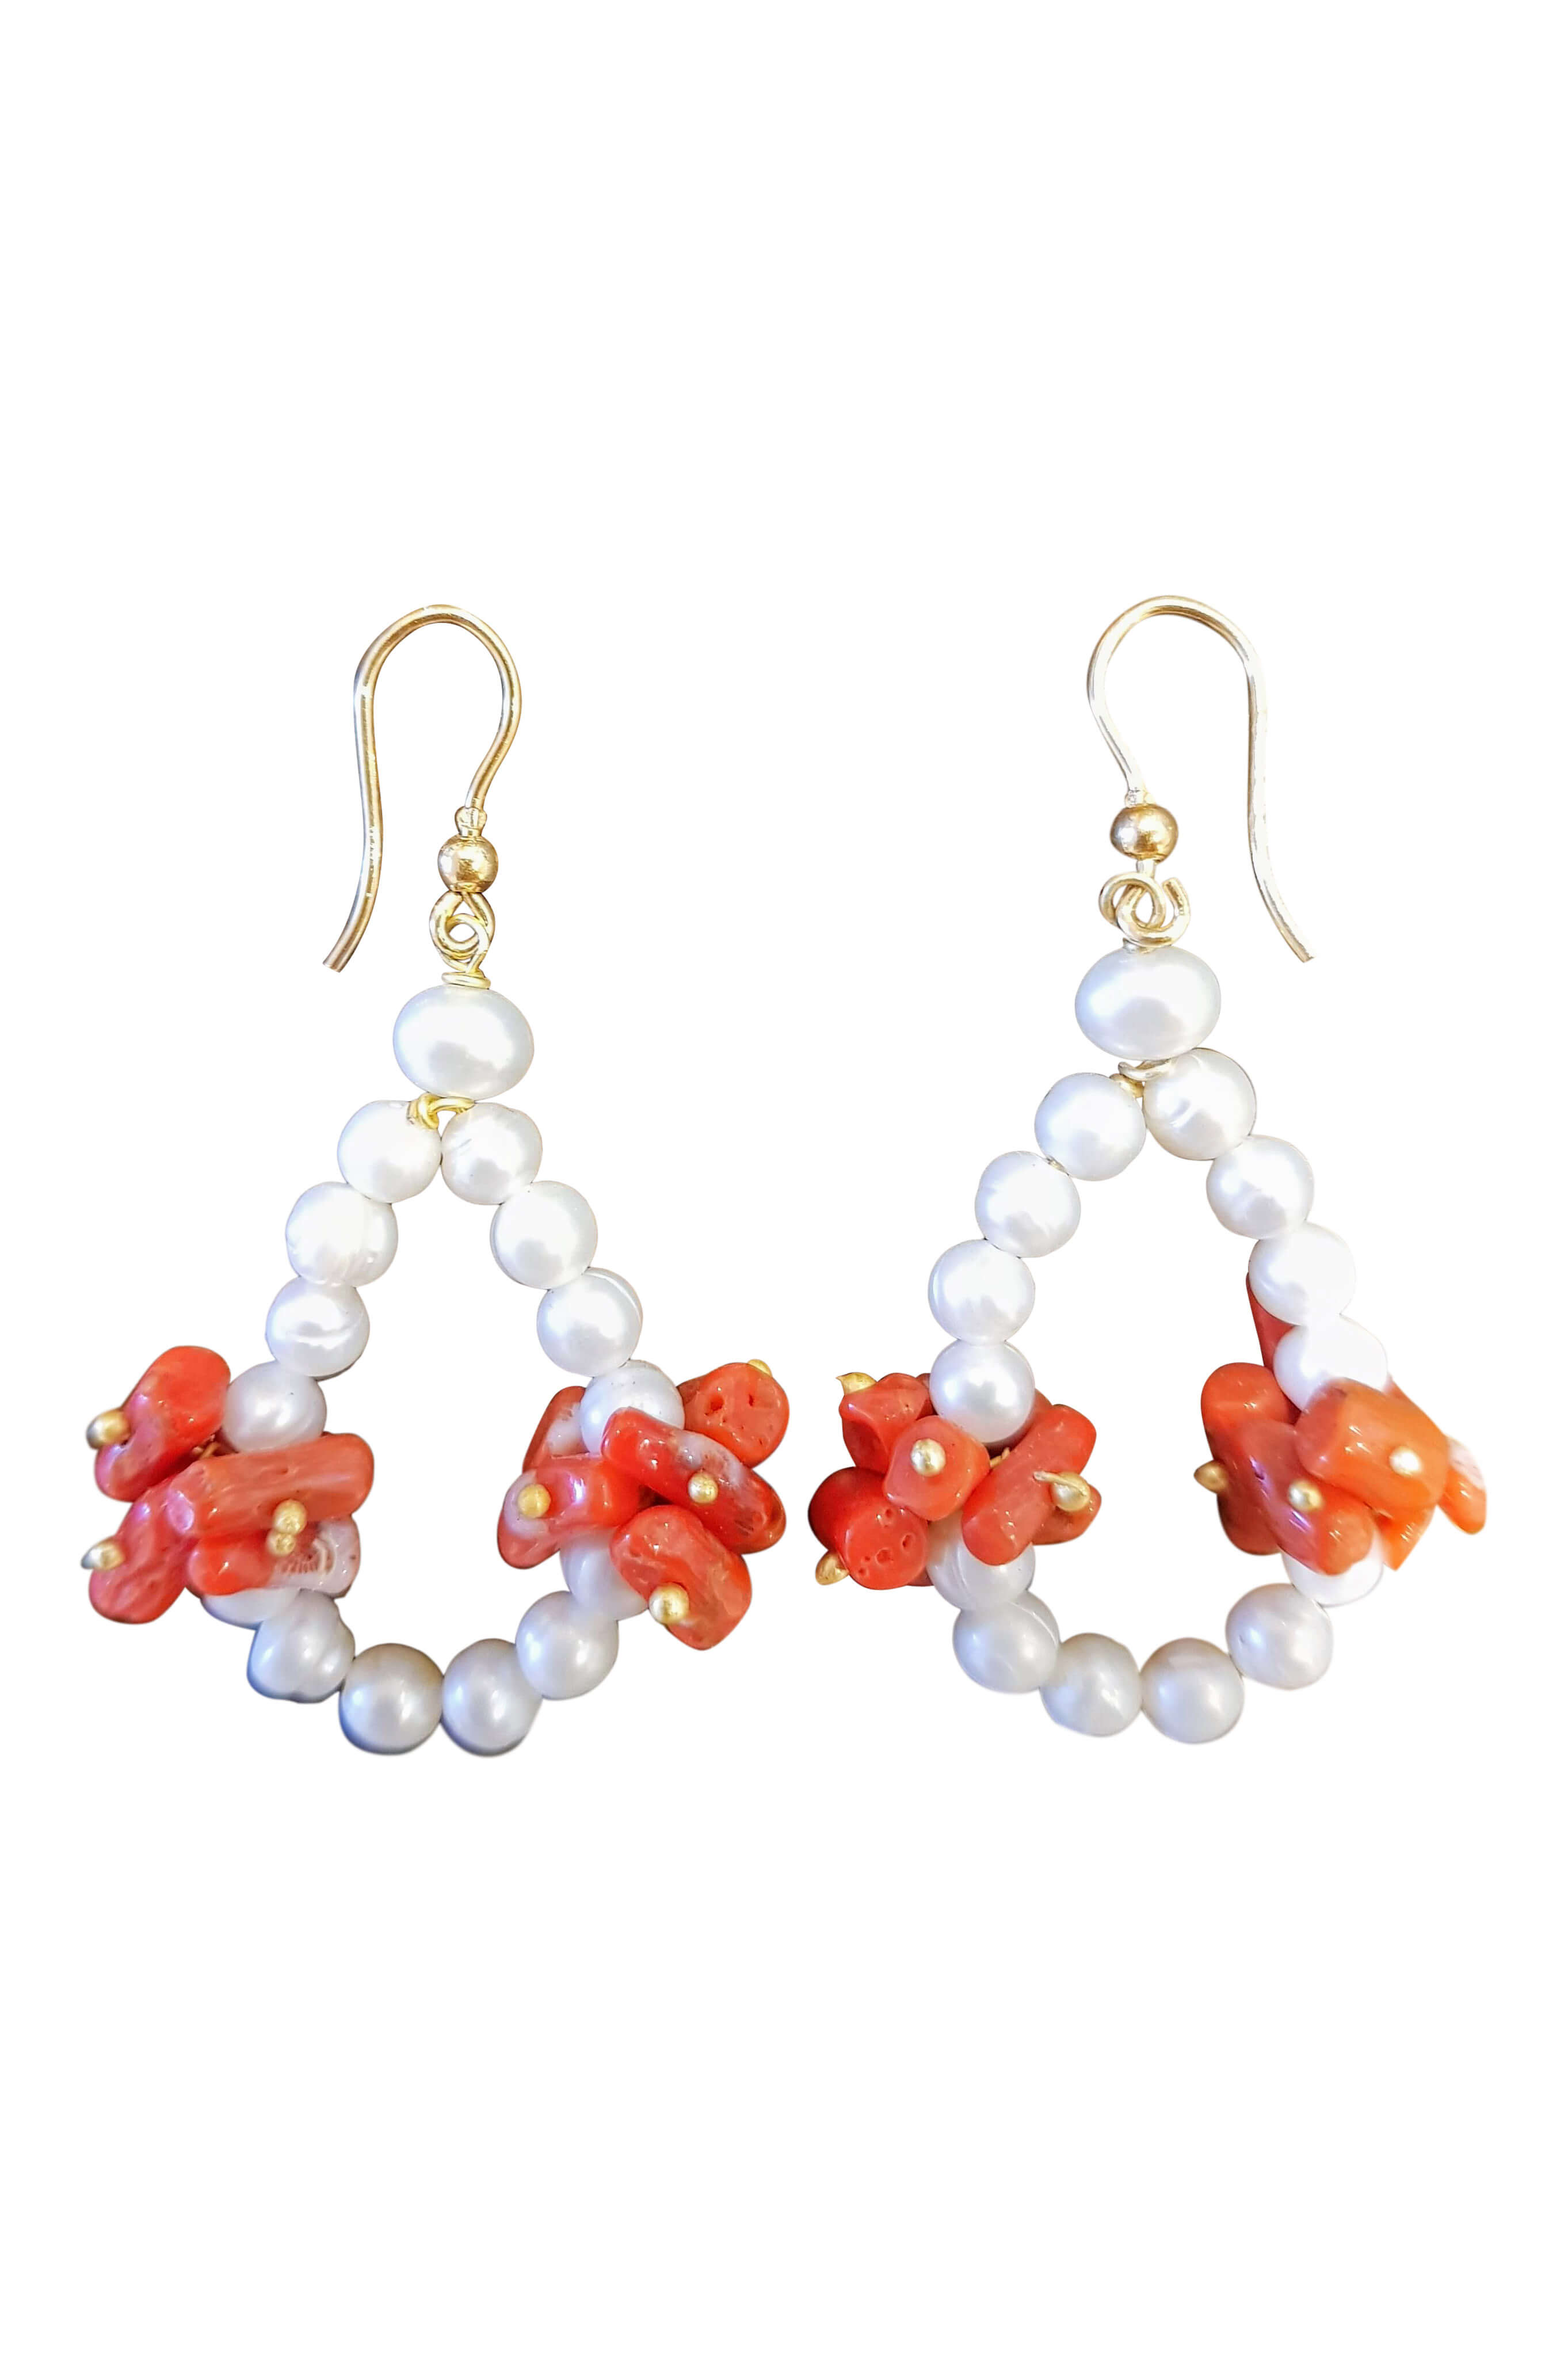 earrings with pearls and corals AGROPOLI